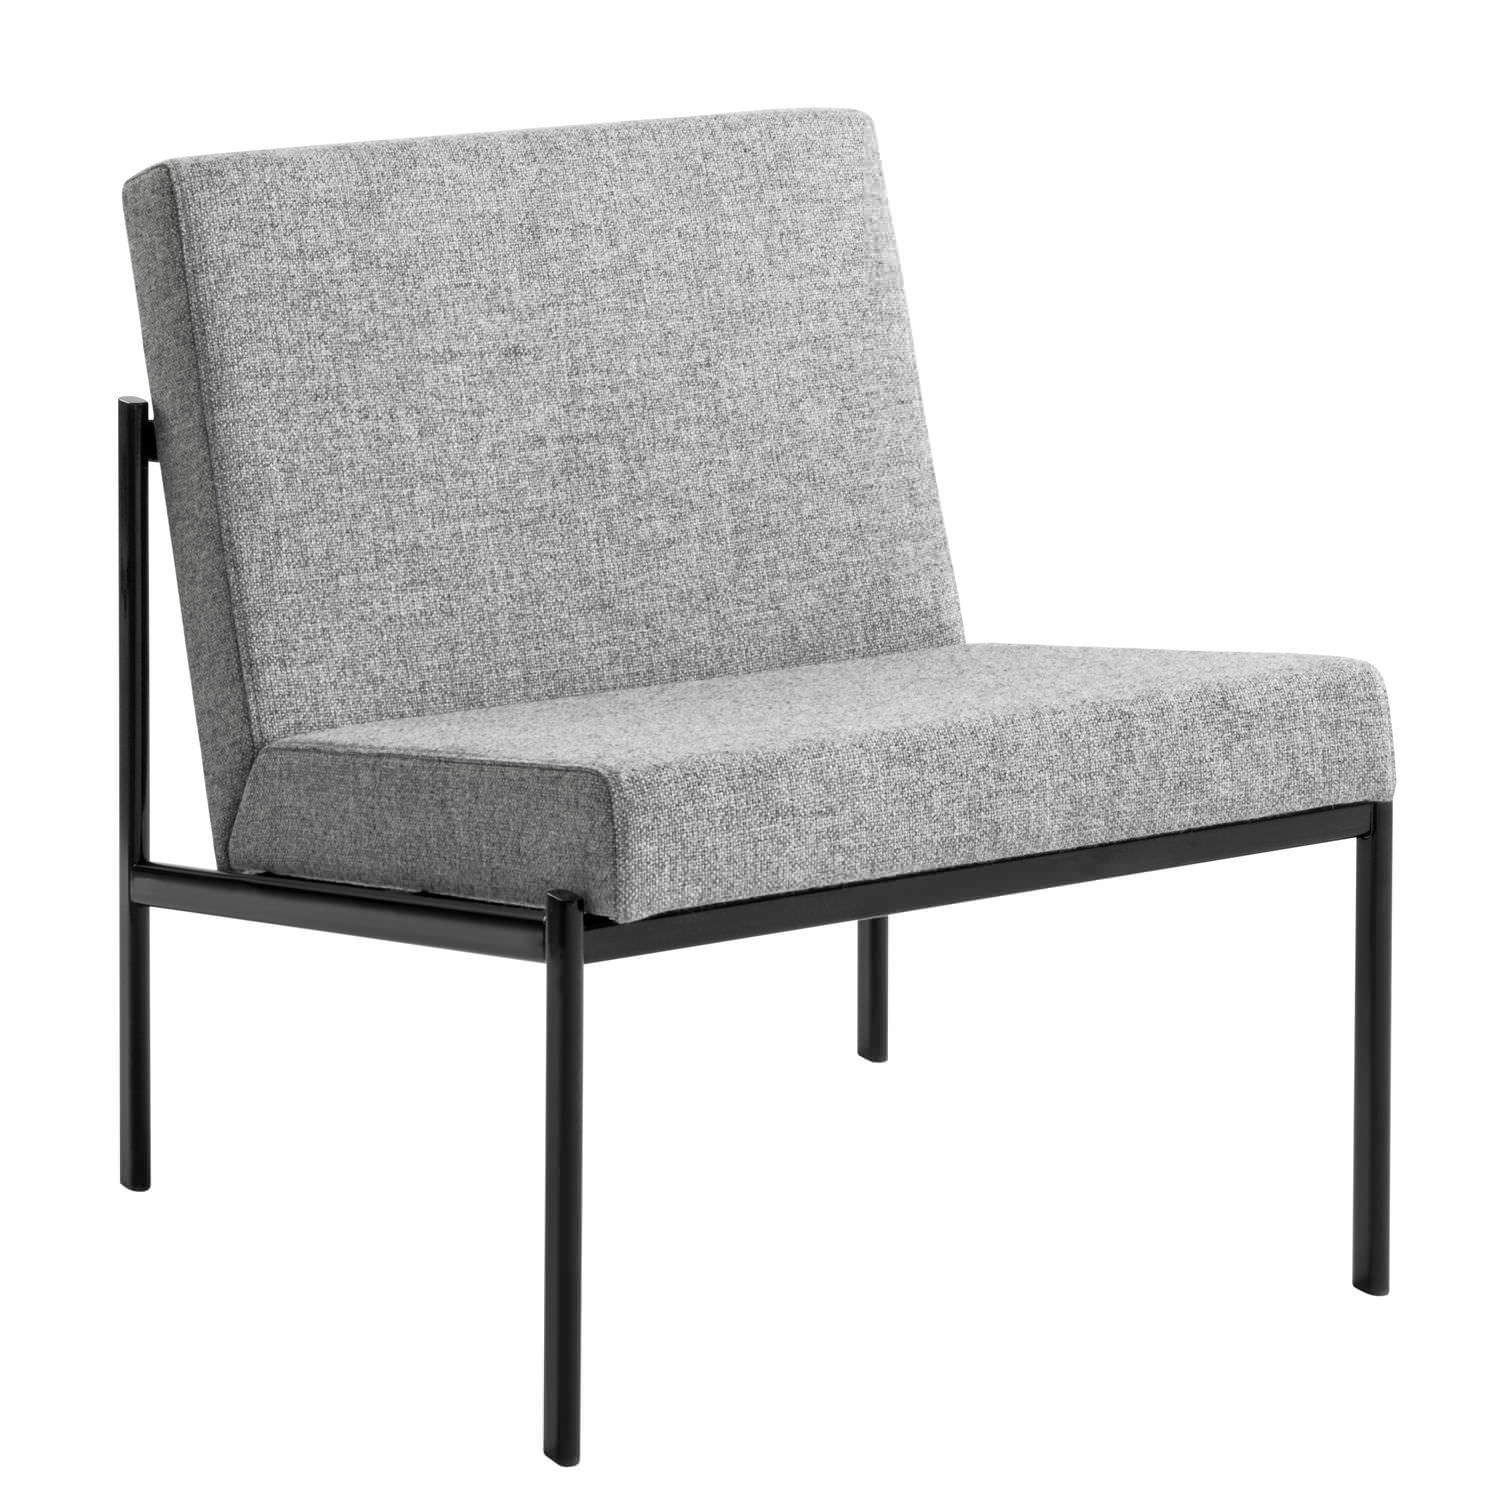 Contemporary Fireside Chair Fabric Leather Steel